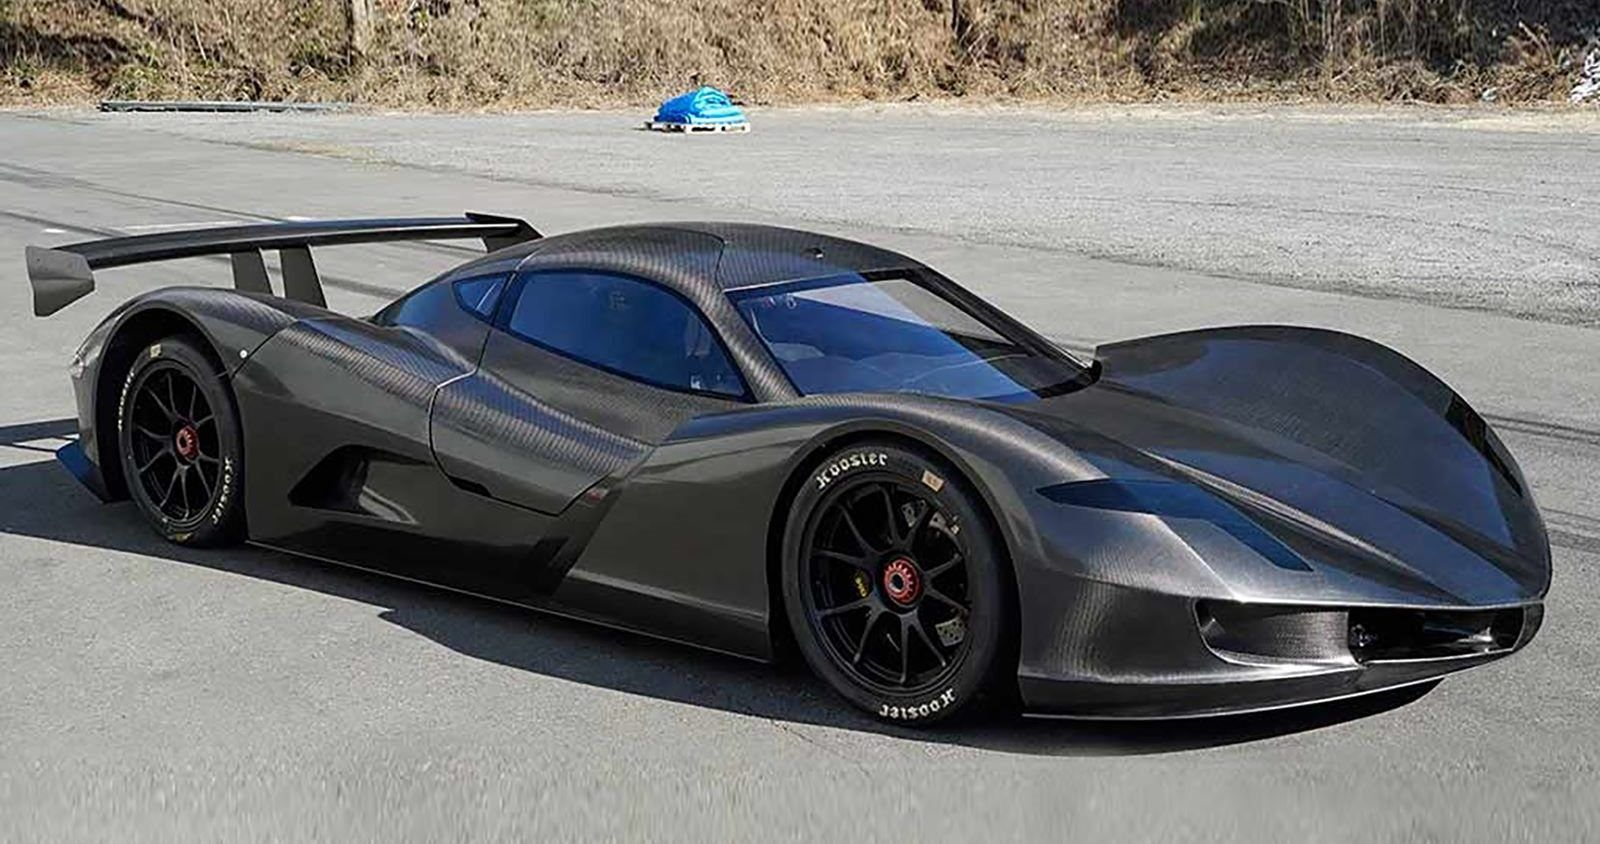 These Are The Fastest All-Electric Cars In The World